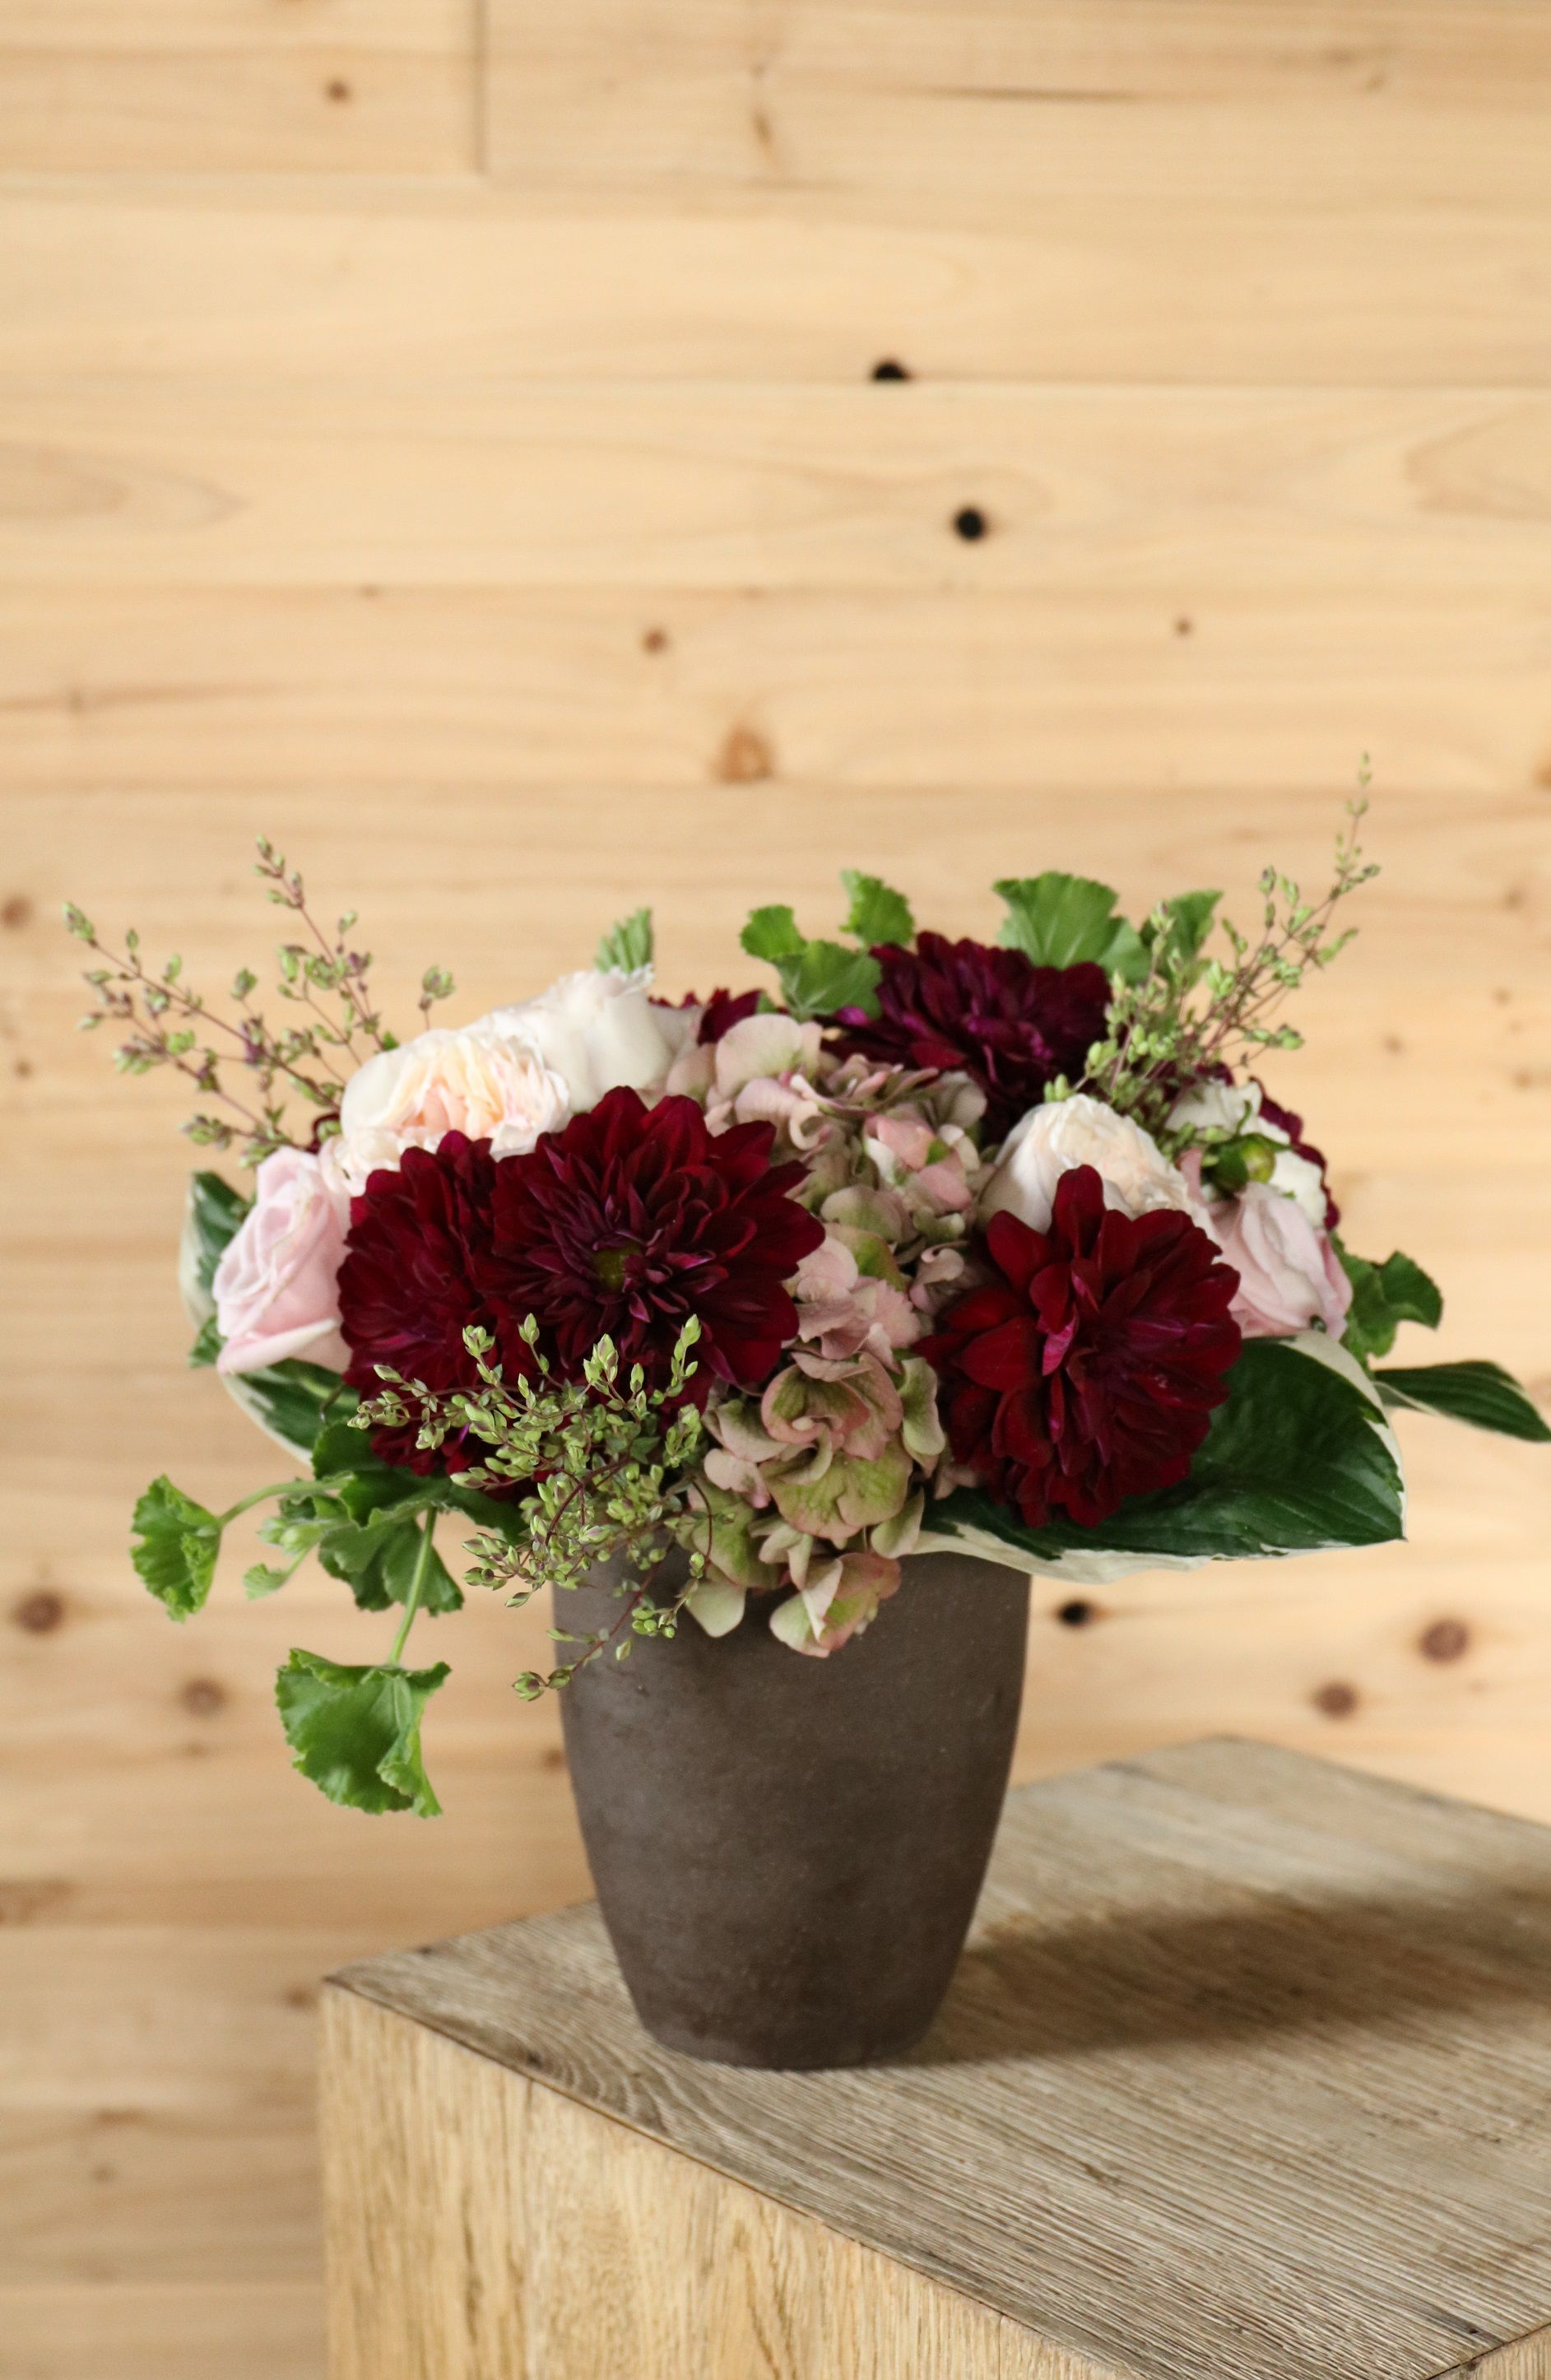 Local dahlias in shades of rich merlot 'Natural Classic